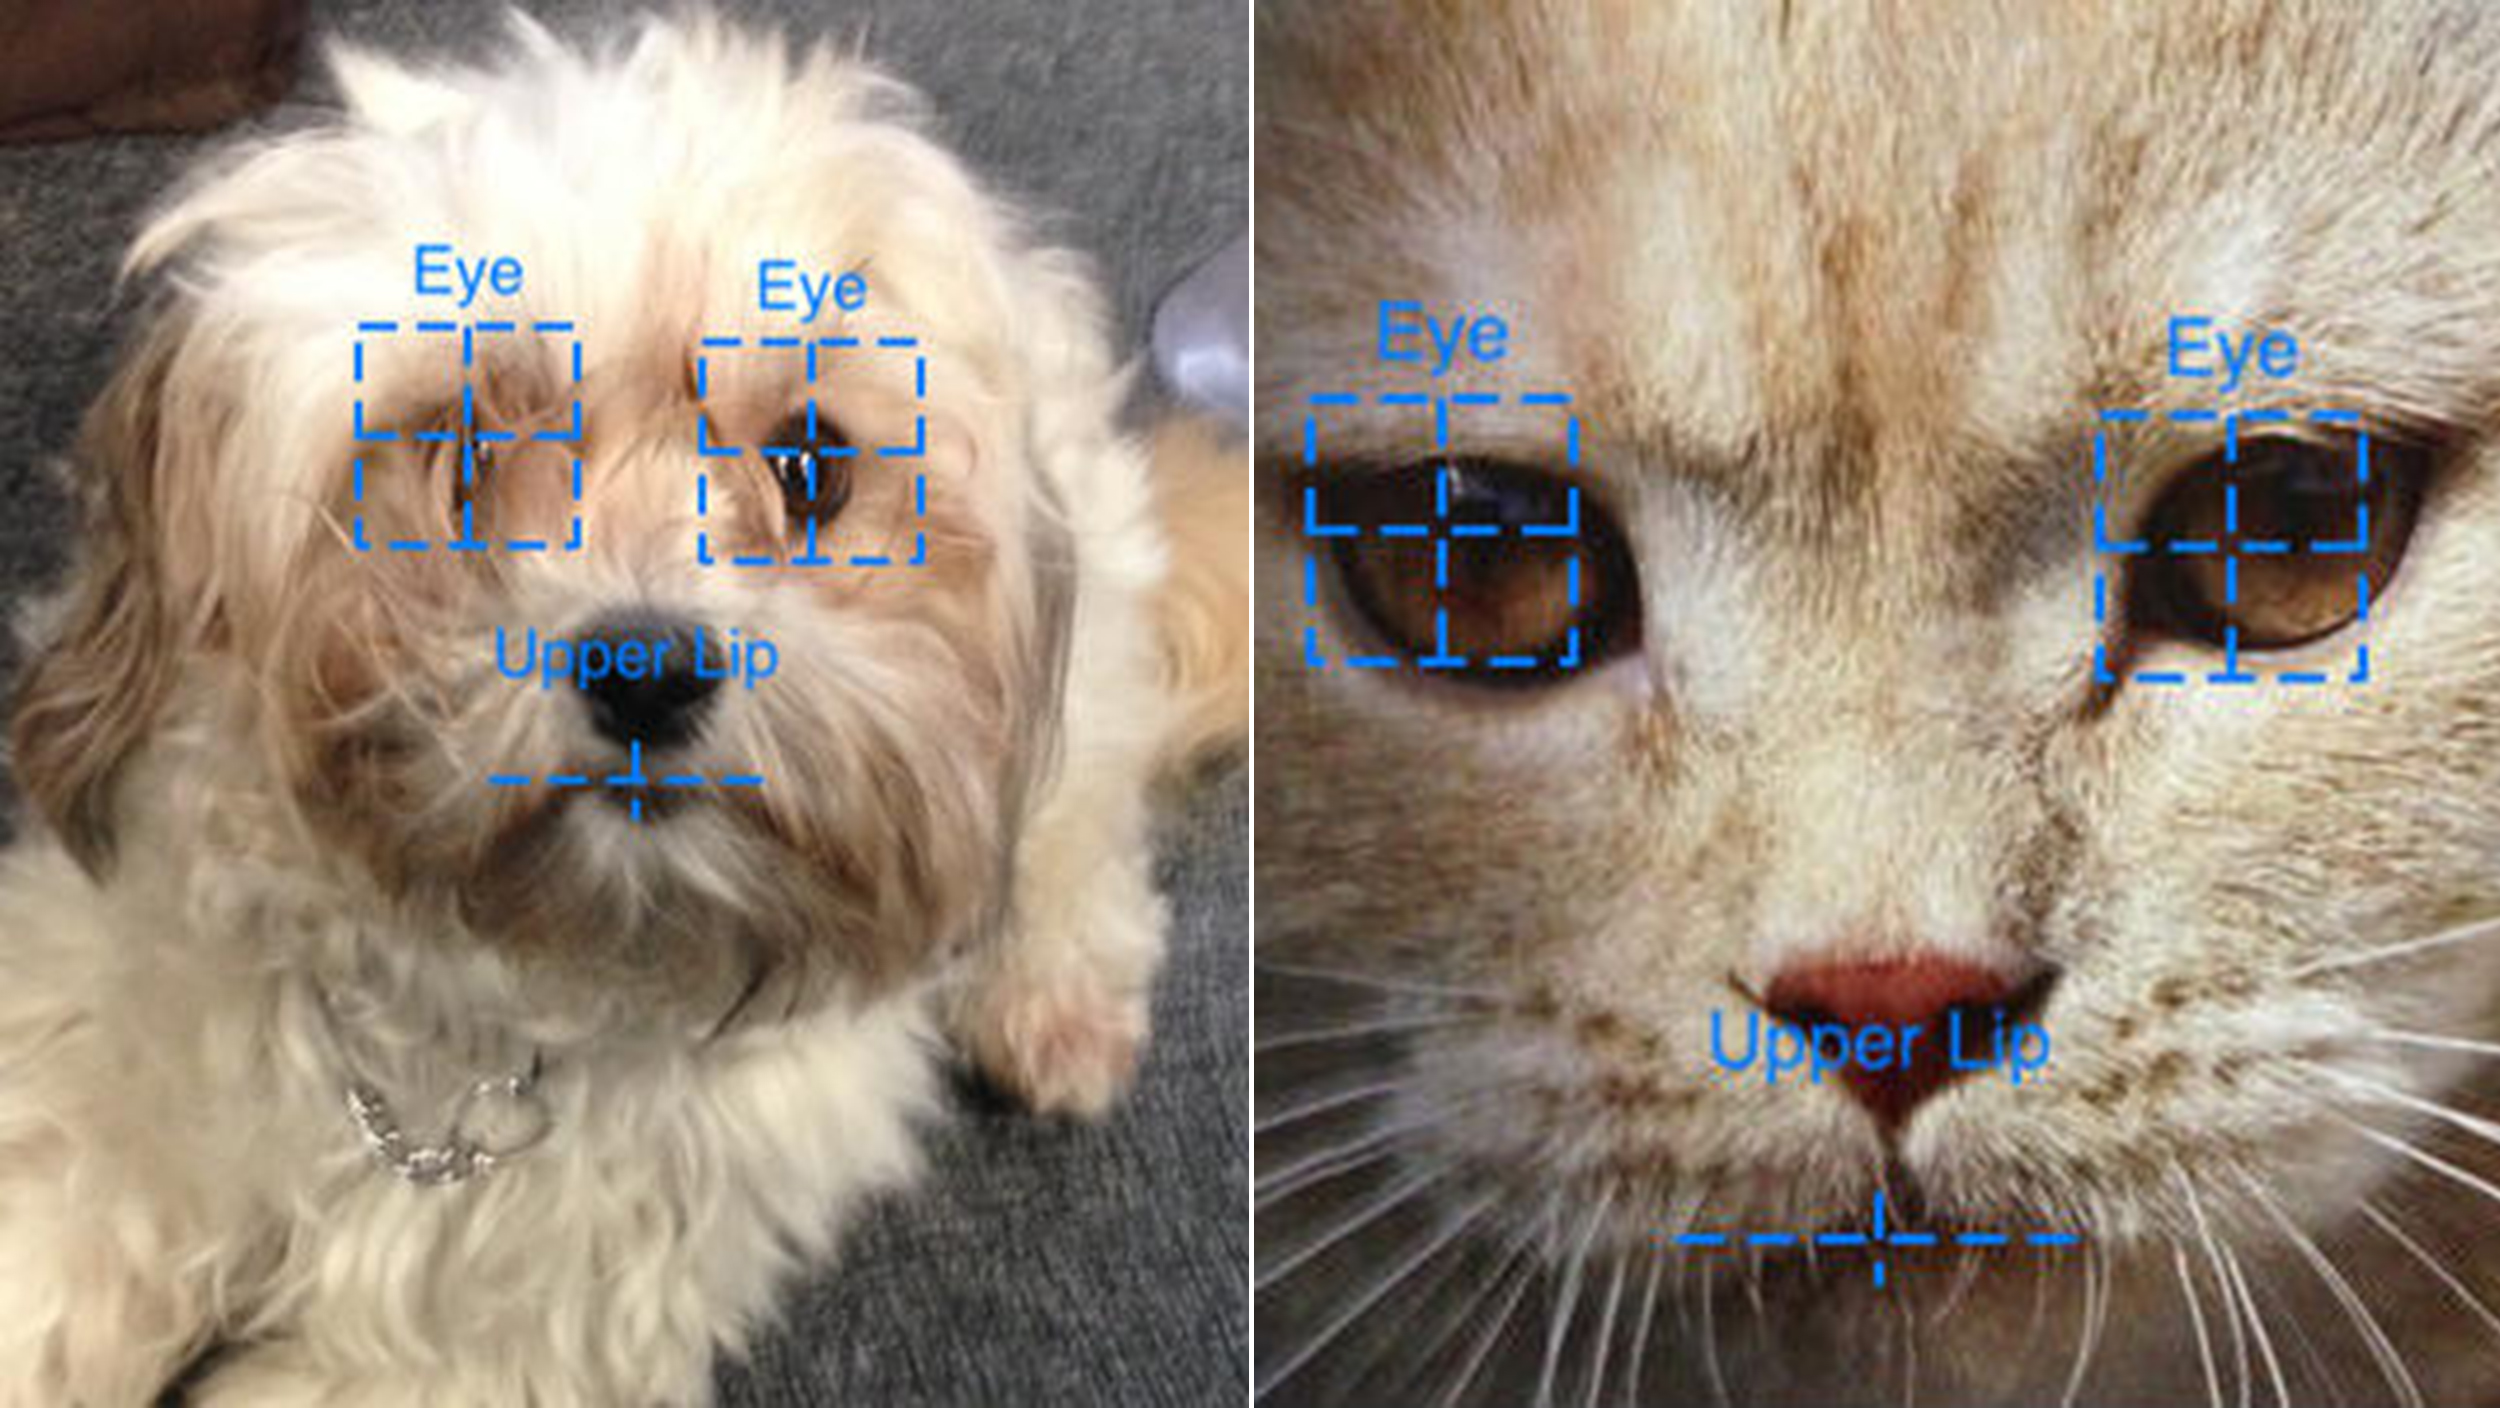 Lost And Found App Uses Facial Recognition Technology To Find Missing Pets